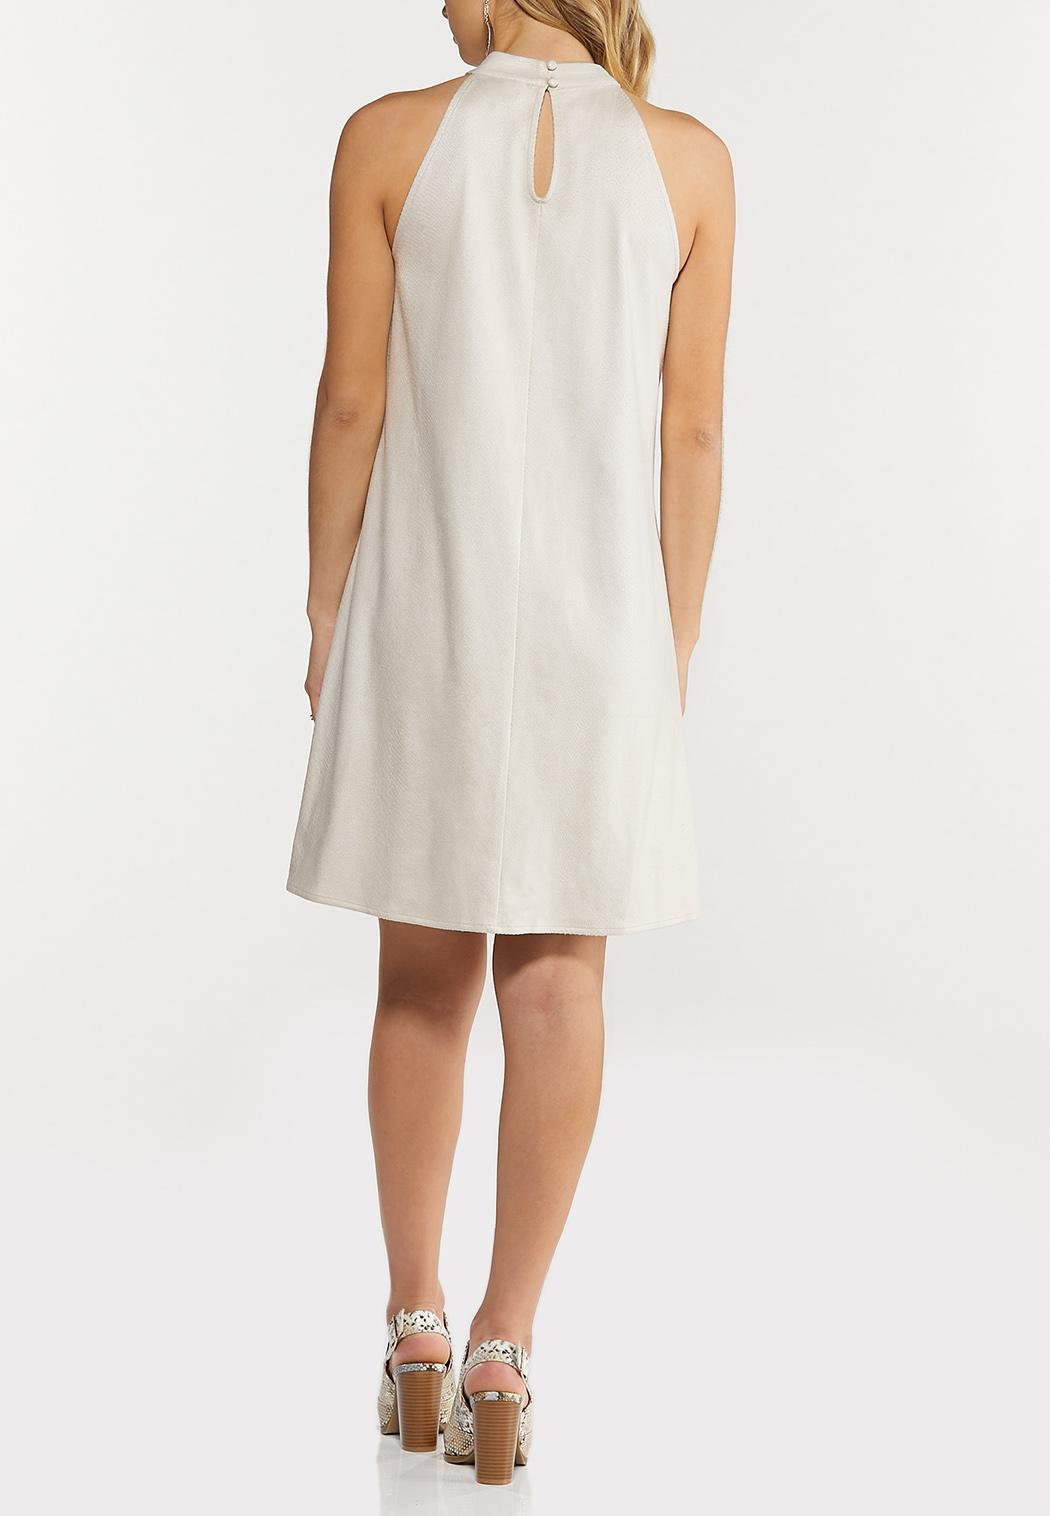 Faux Snake Textured Swing Dress (Item #44508959)